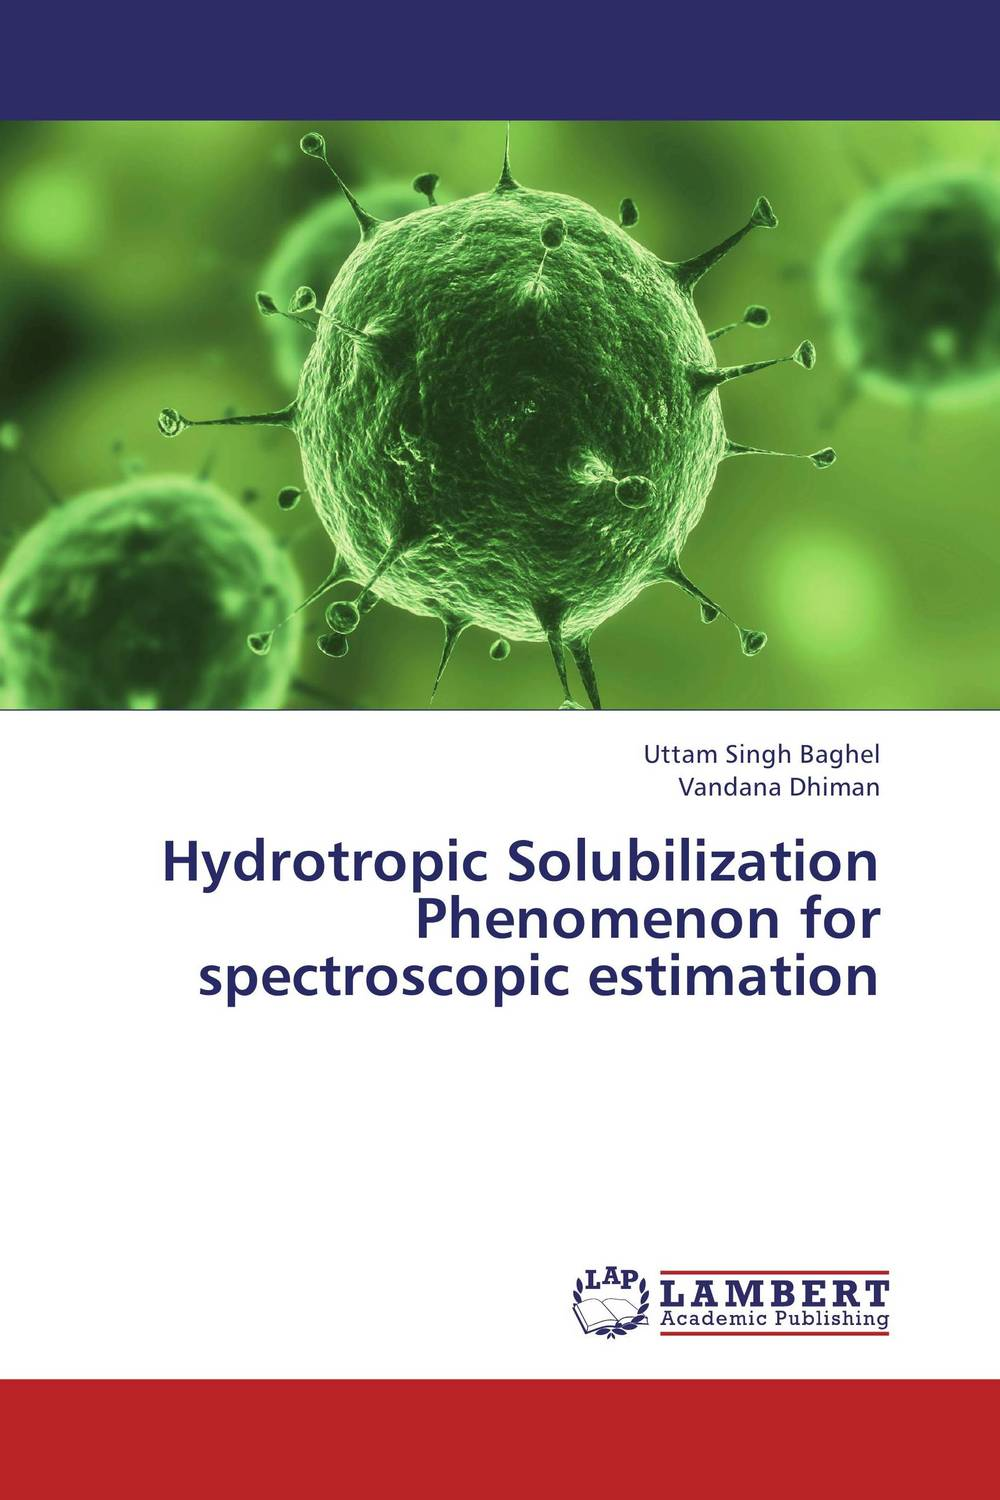 Hydrotropic Solubilization Phenomenon for spectroscopic estimation hydrotropic solubilization phenomenon for spectroscopic estimation